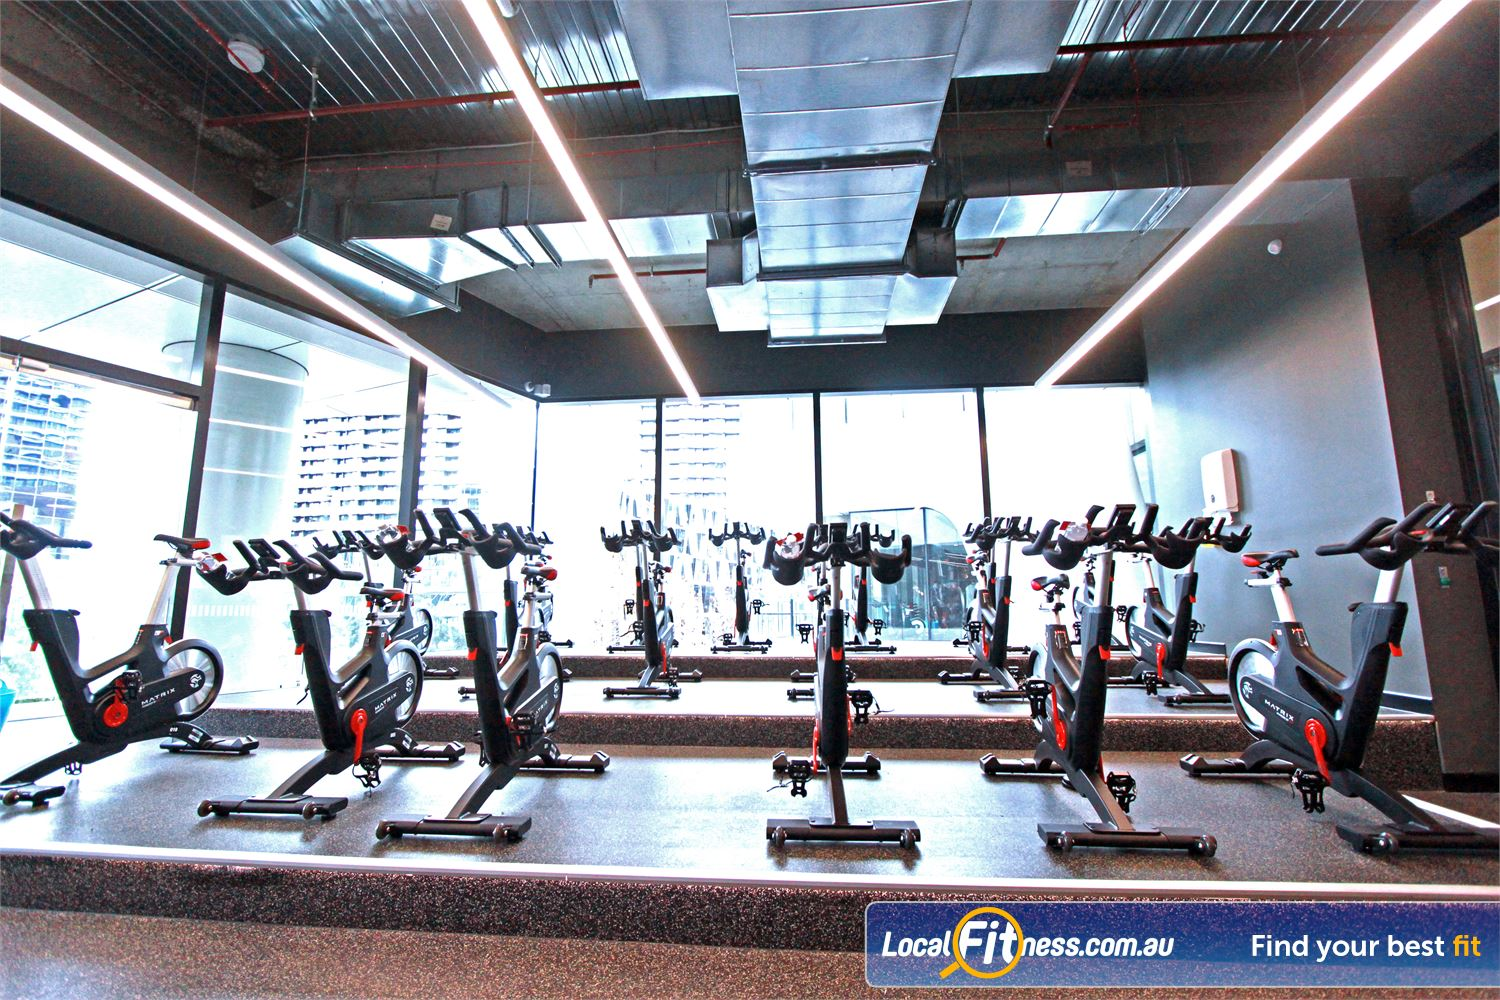 Goodlife Health Clubs Docklands Experience one of the best spin cycle studios in Docklands.